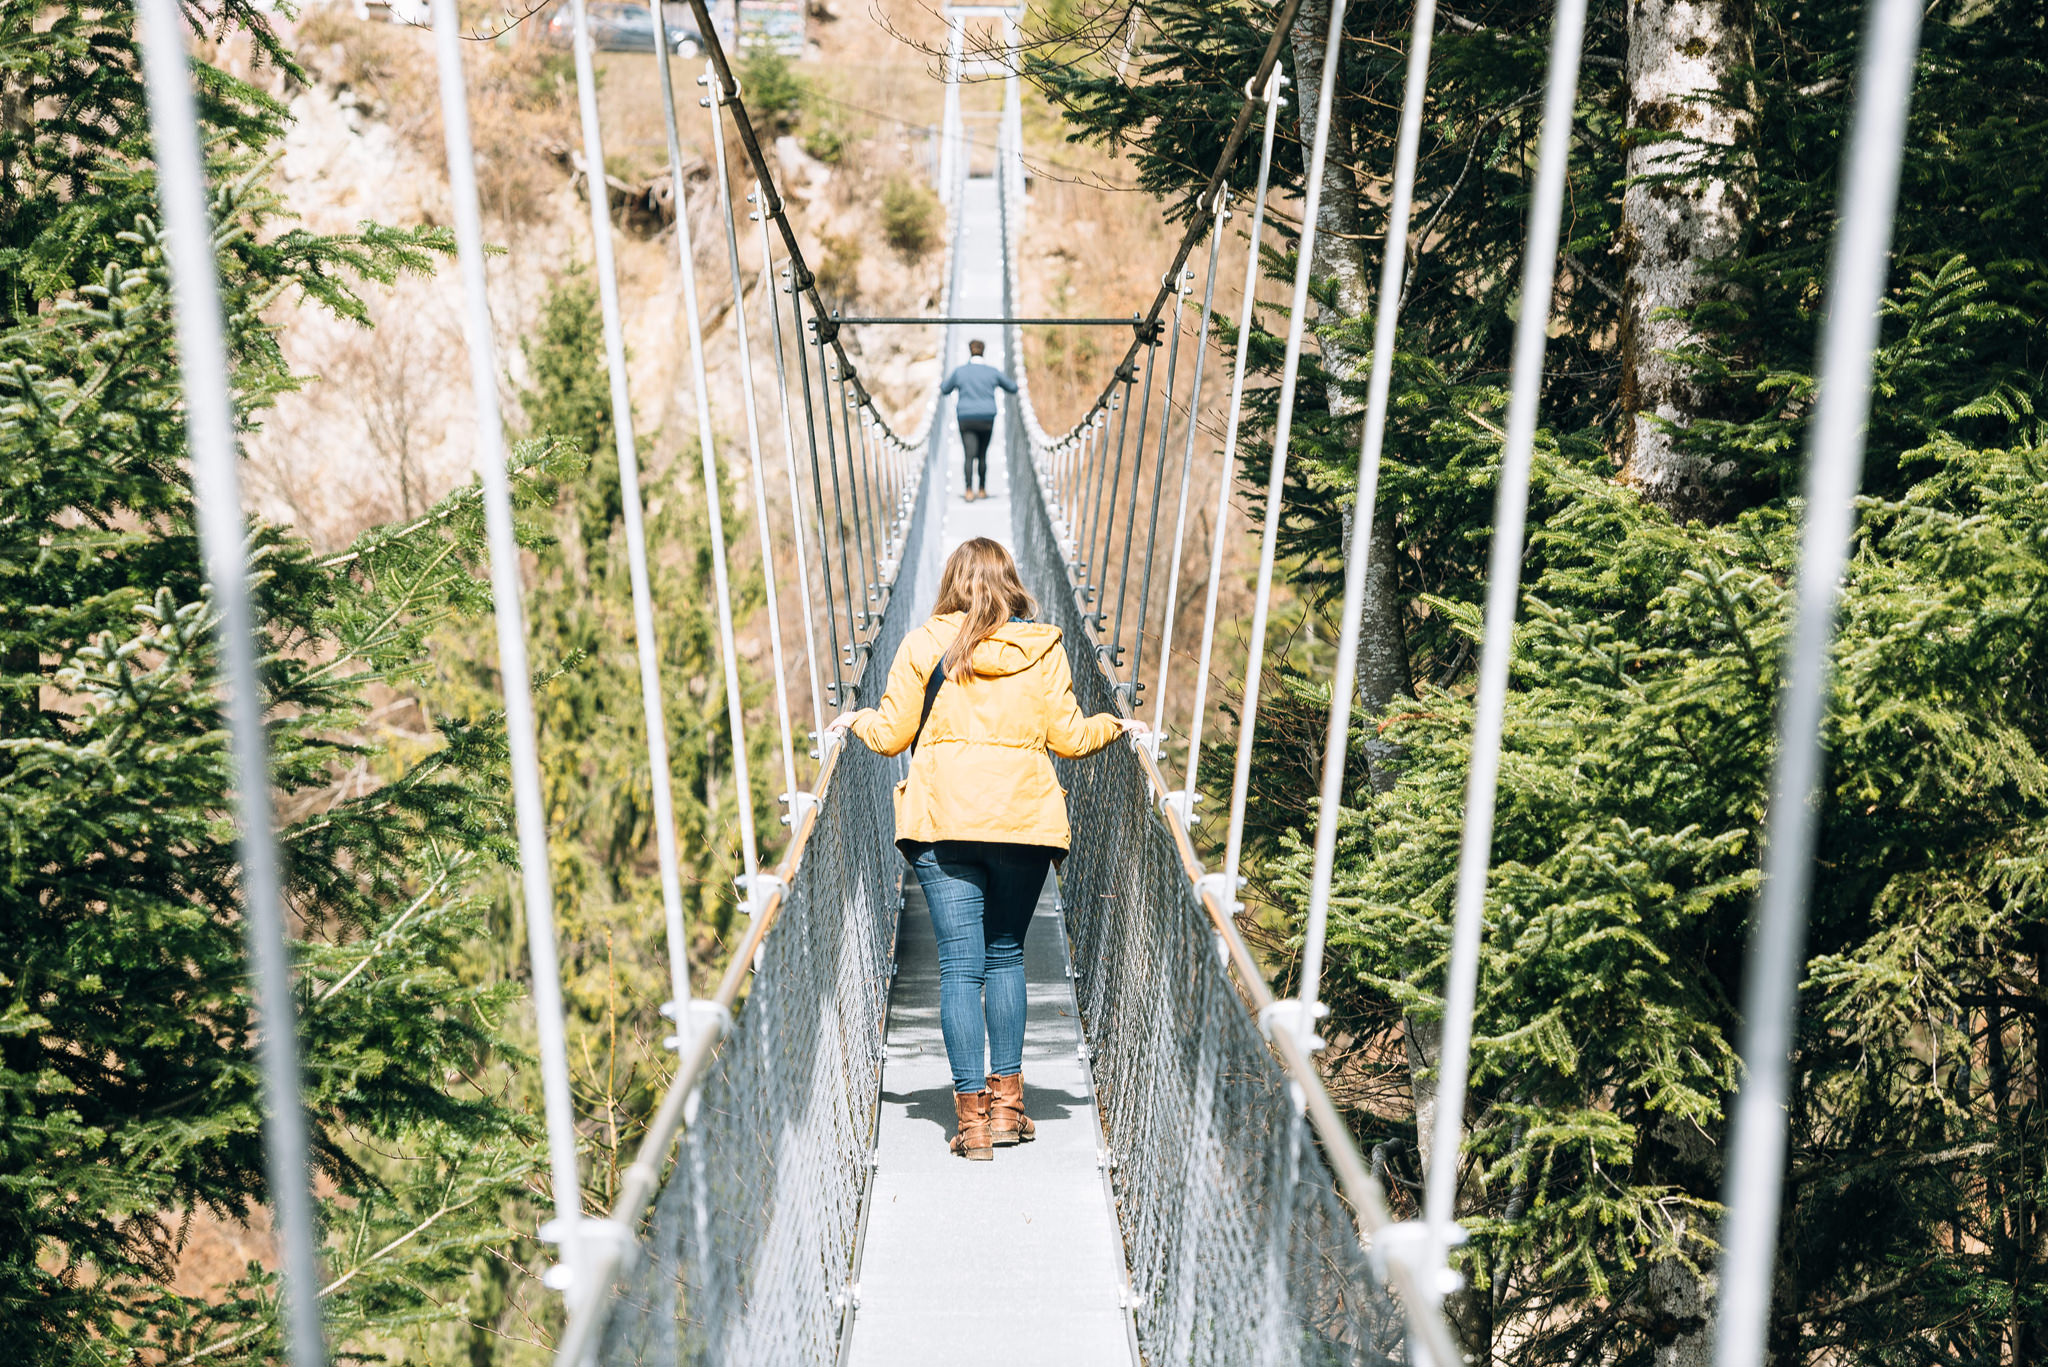 suspension bridge in adelboden